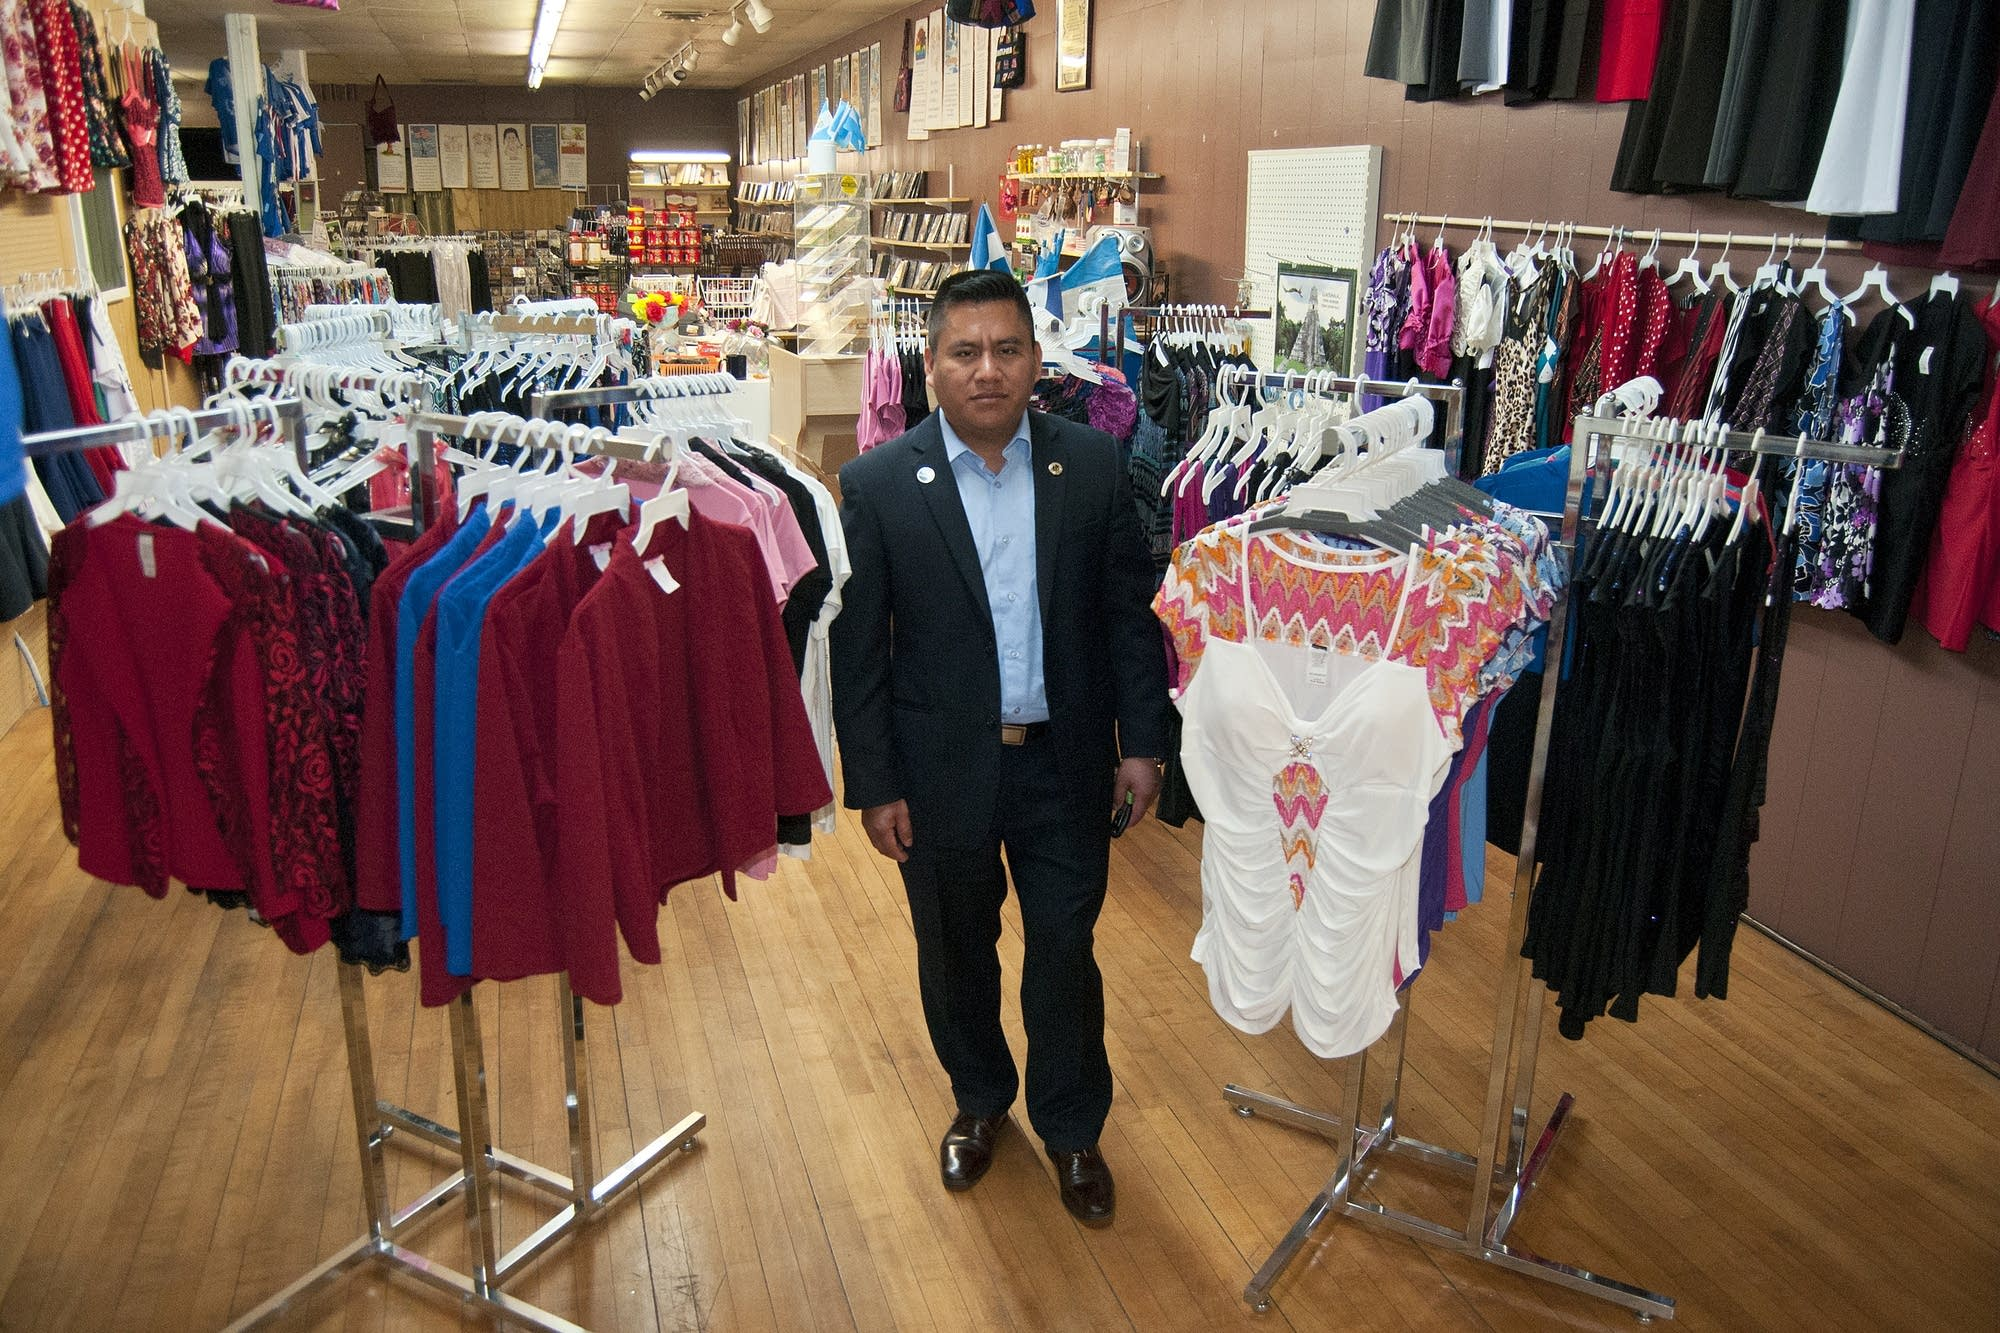 Edgar Mendez inside his store